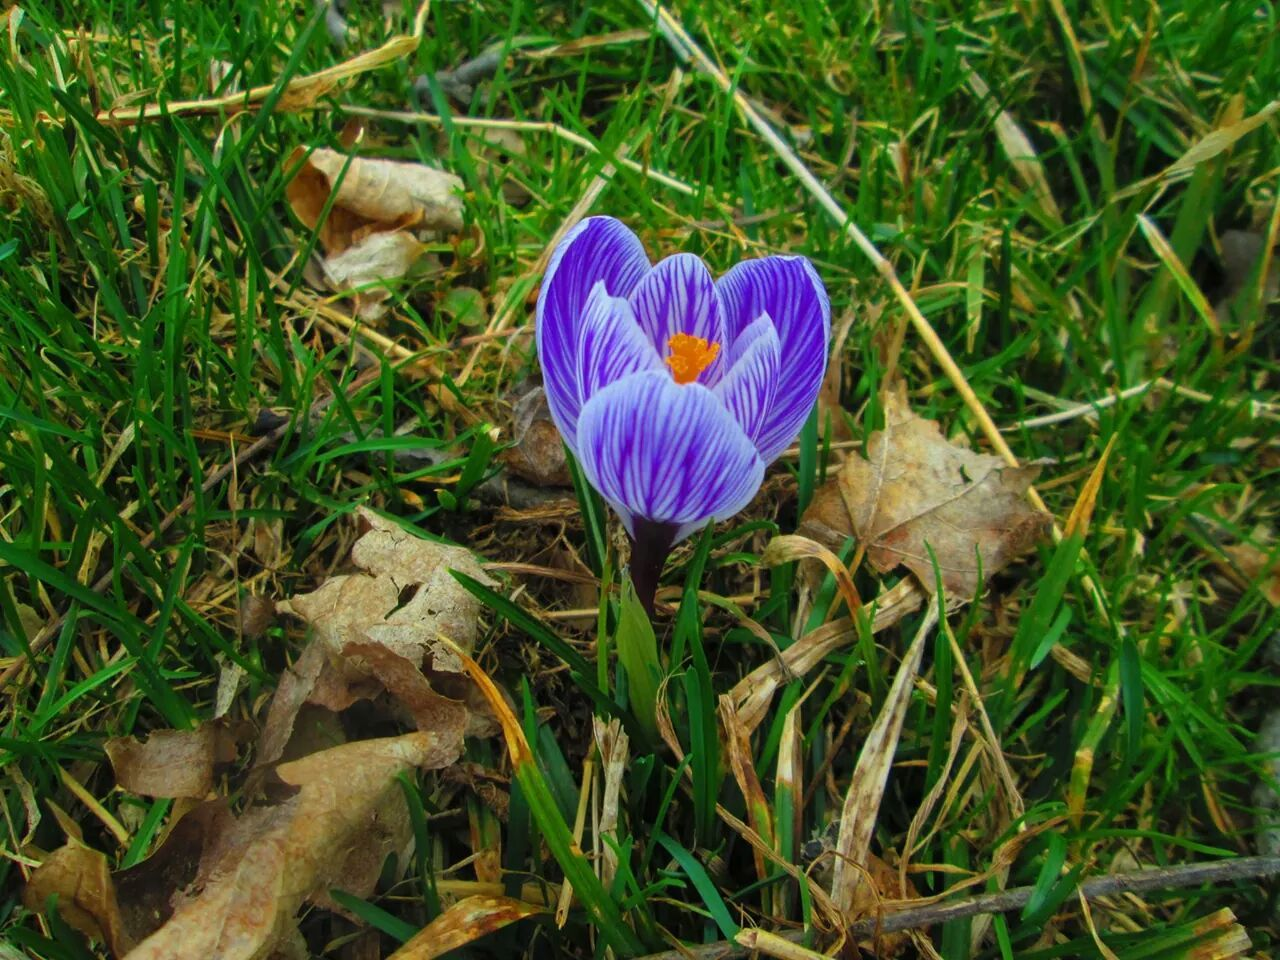 Tulips Known As The First Flower Of Spring Peaking Up Into The